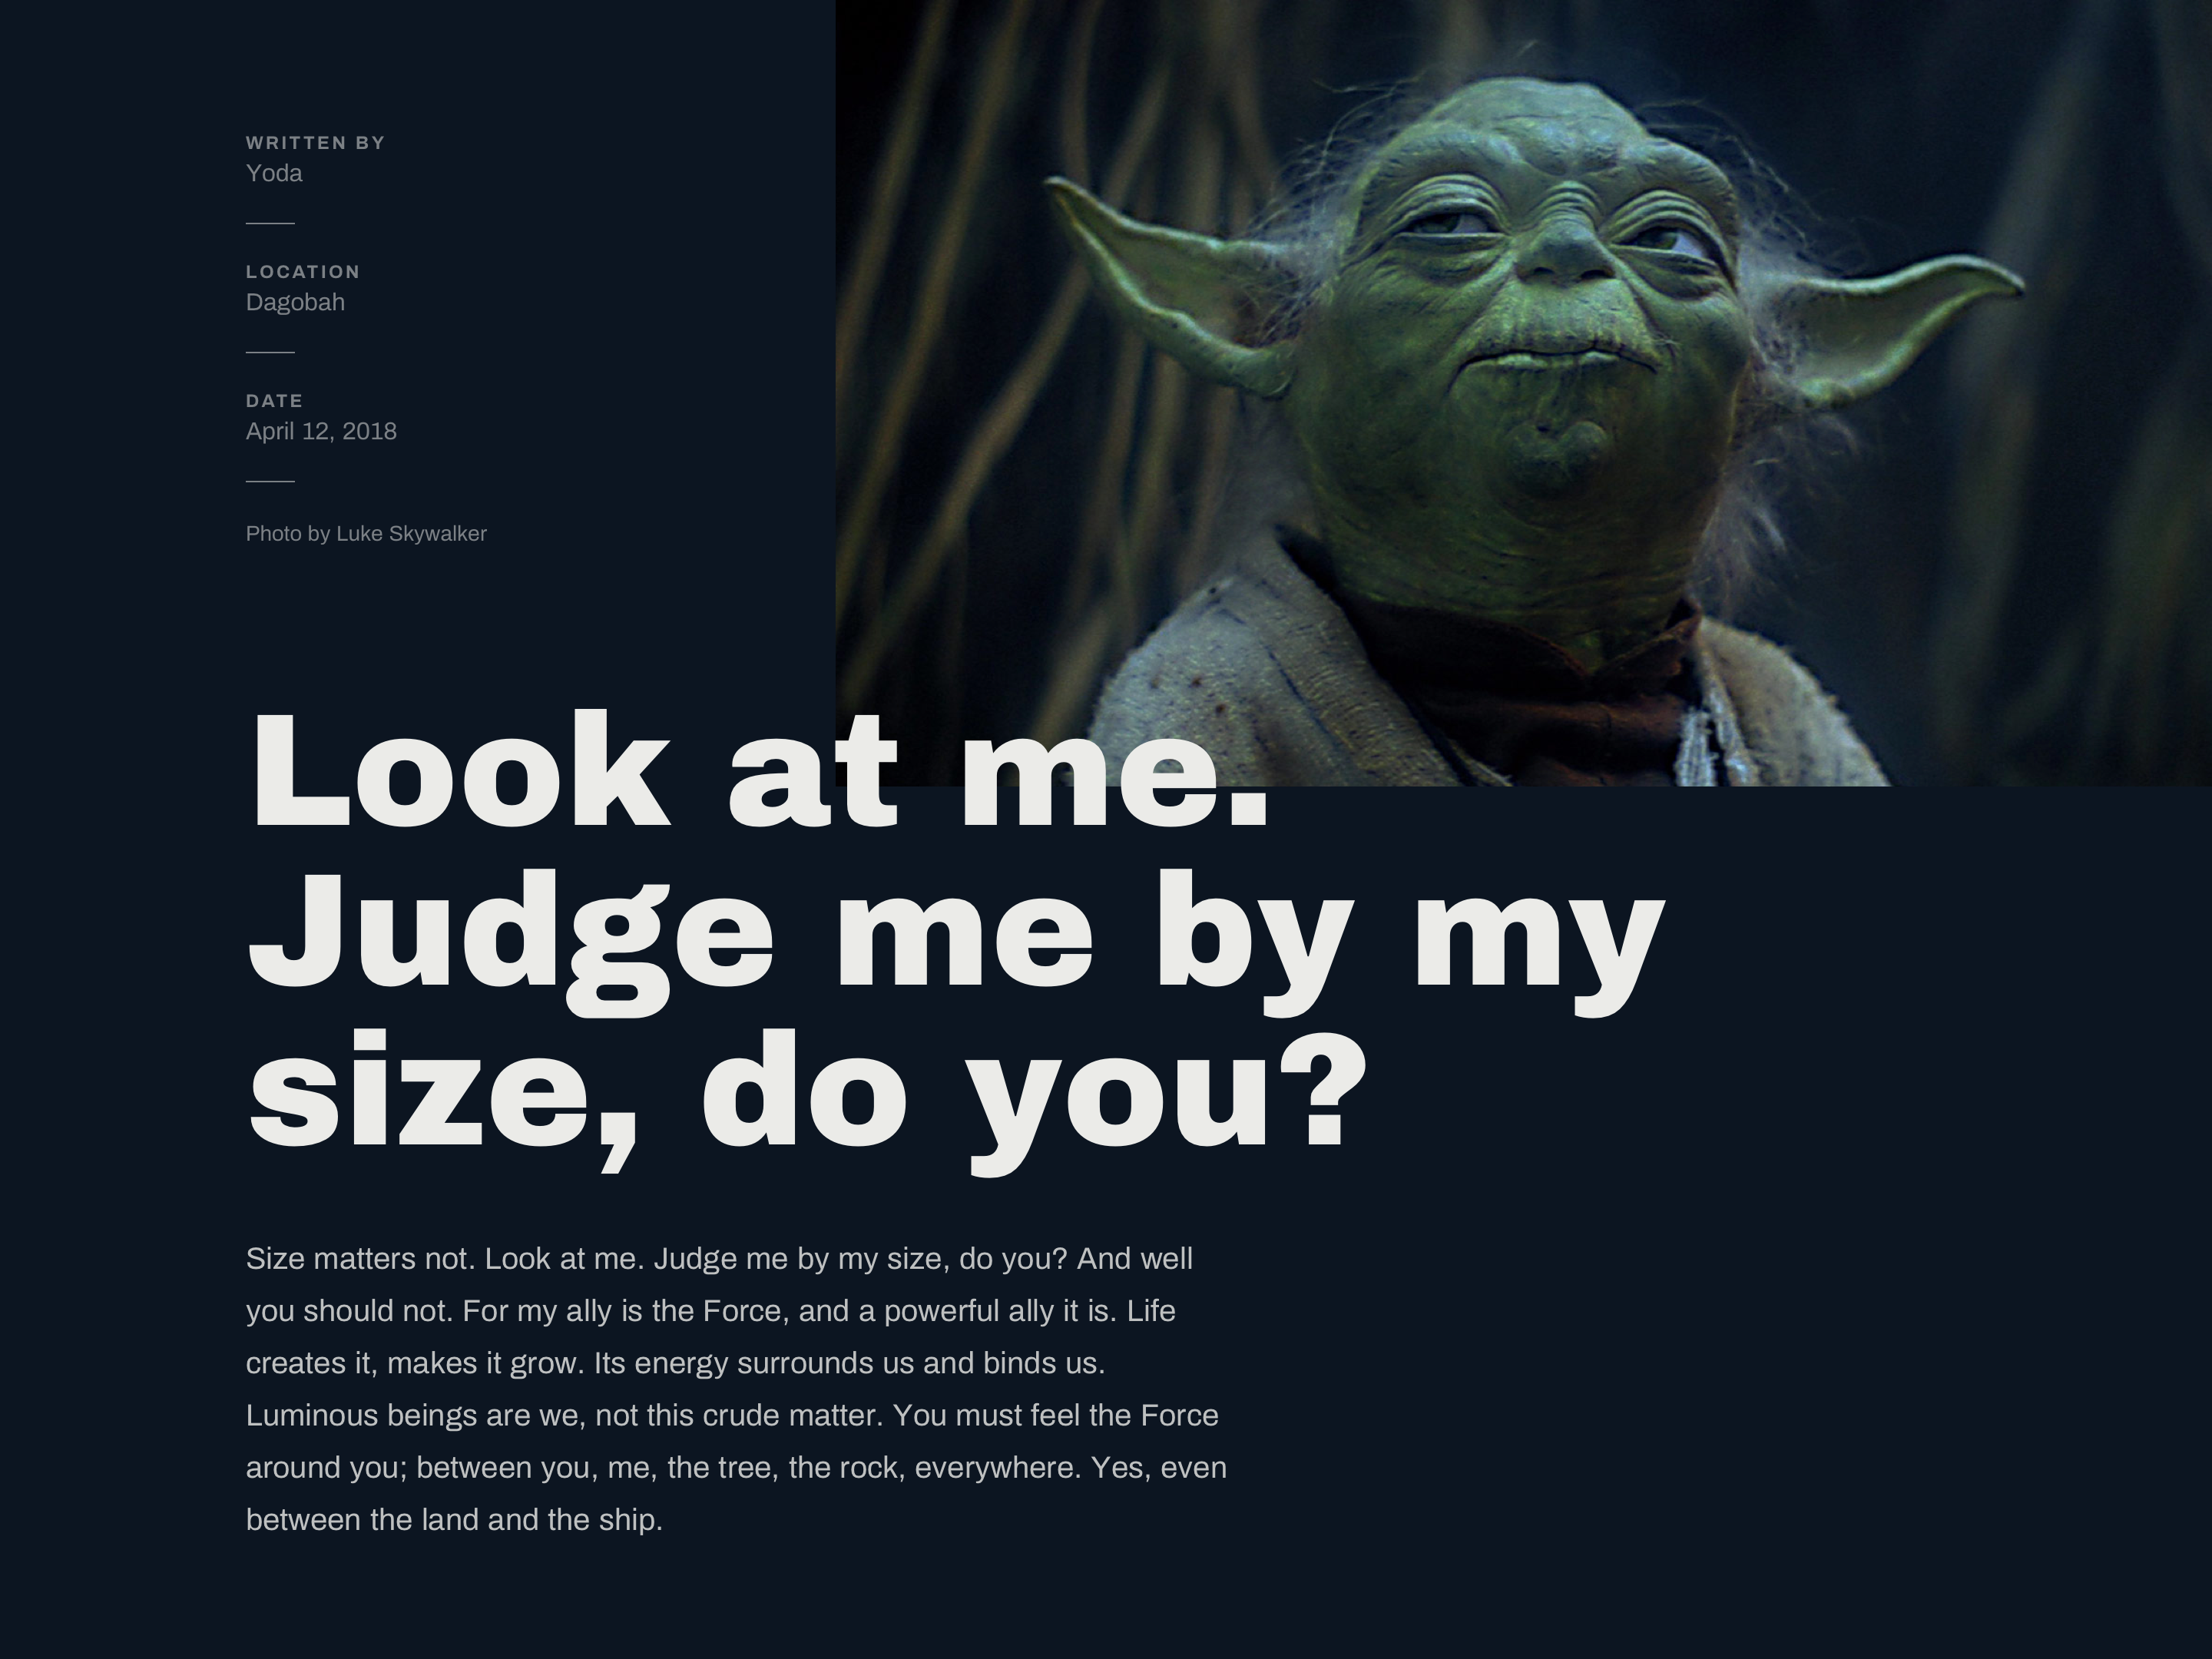 193c5f2e4f0 By joshua krohn views back to project yoda archivo png 2880x2160 Yoda land